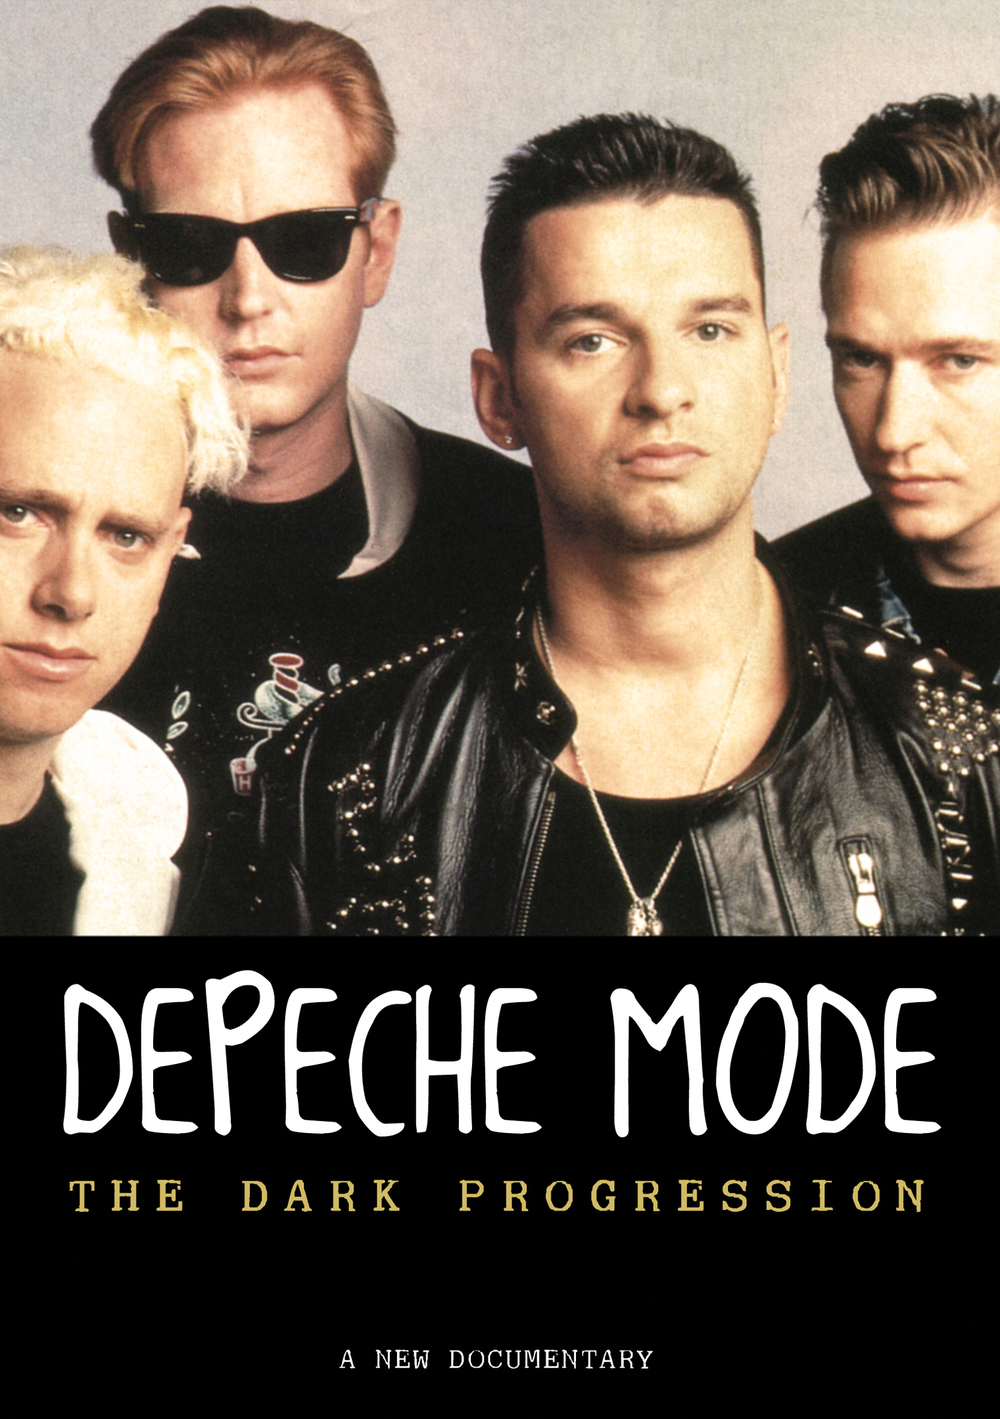 Depeche Mode - The Dark Progression - Thumbnail.jpg